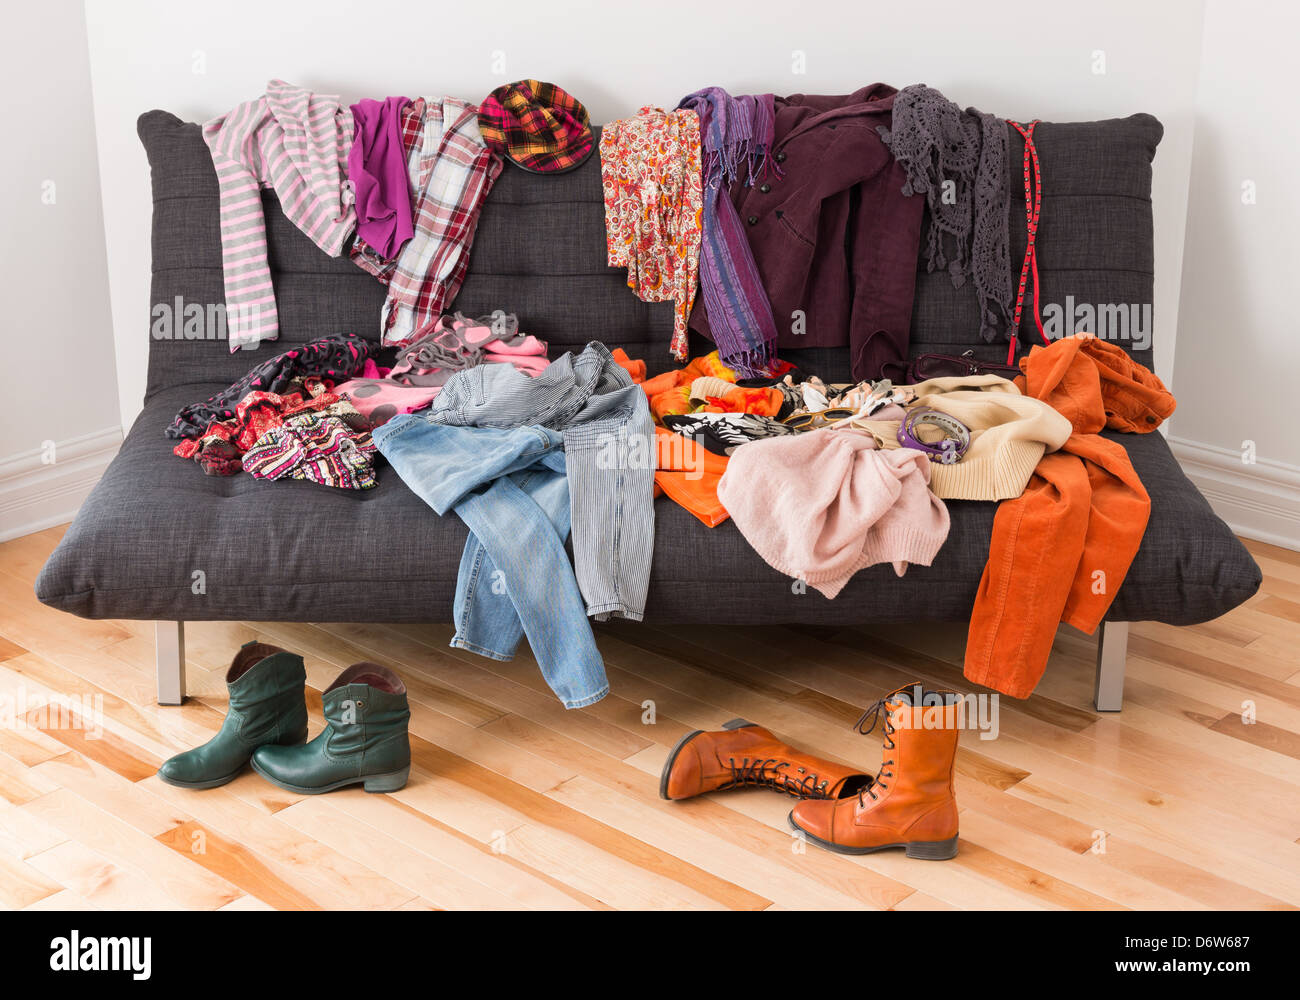 What to wear? Messy colorful clothing on a sofa. Stock Photo